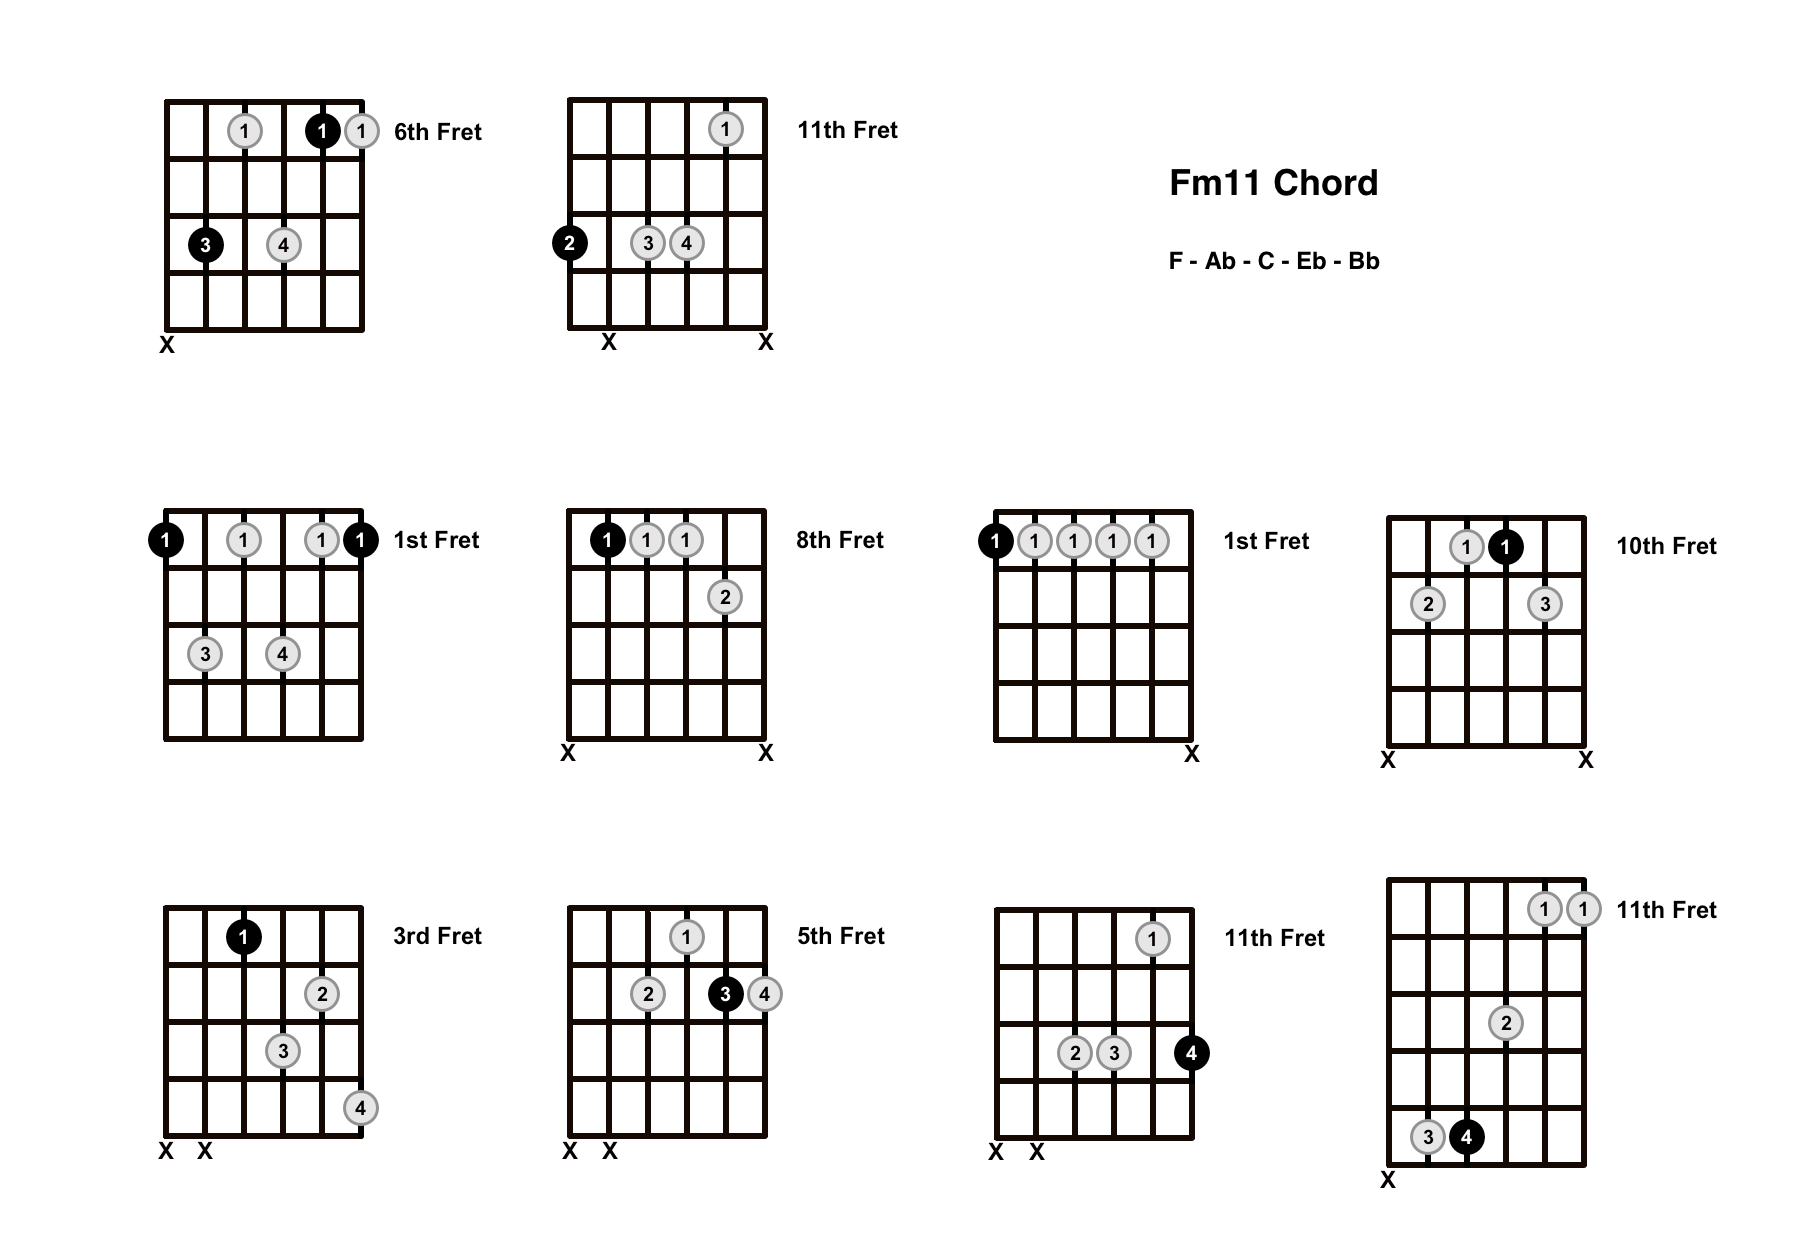 Fm11 Chord On The Guitar (F minor 11) – Diagrams, Finger Positions and Theory